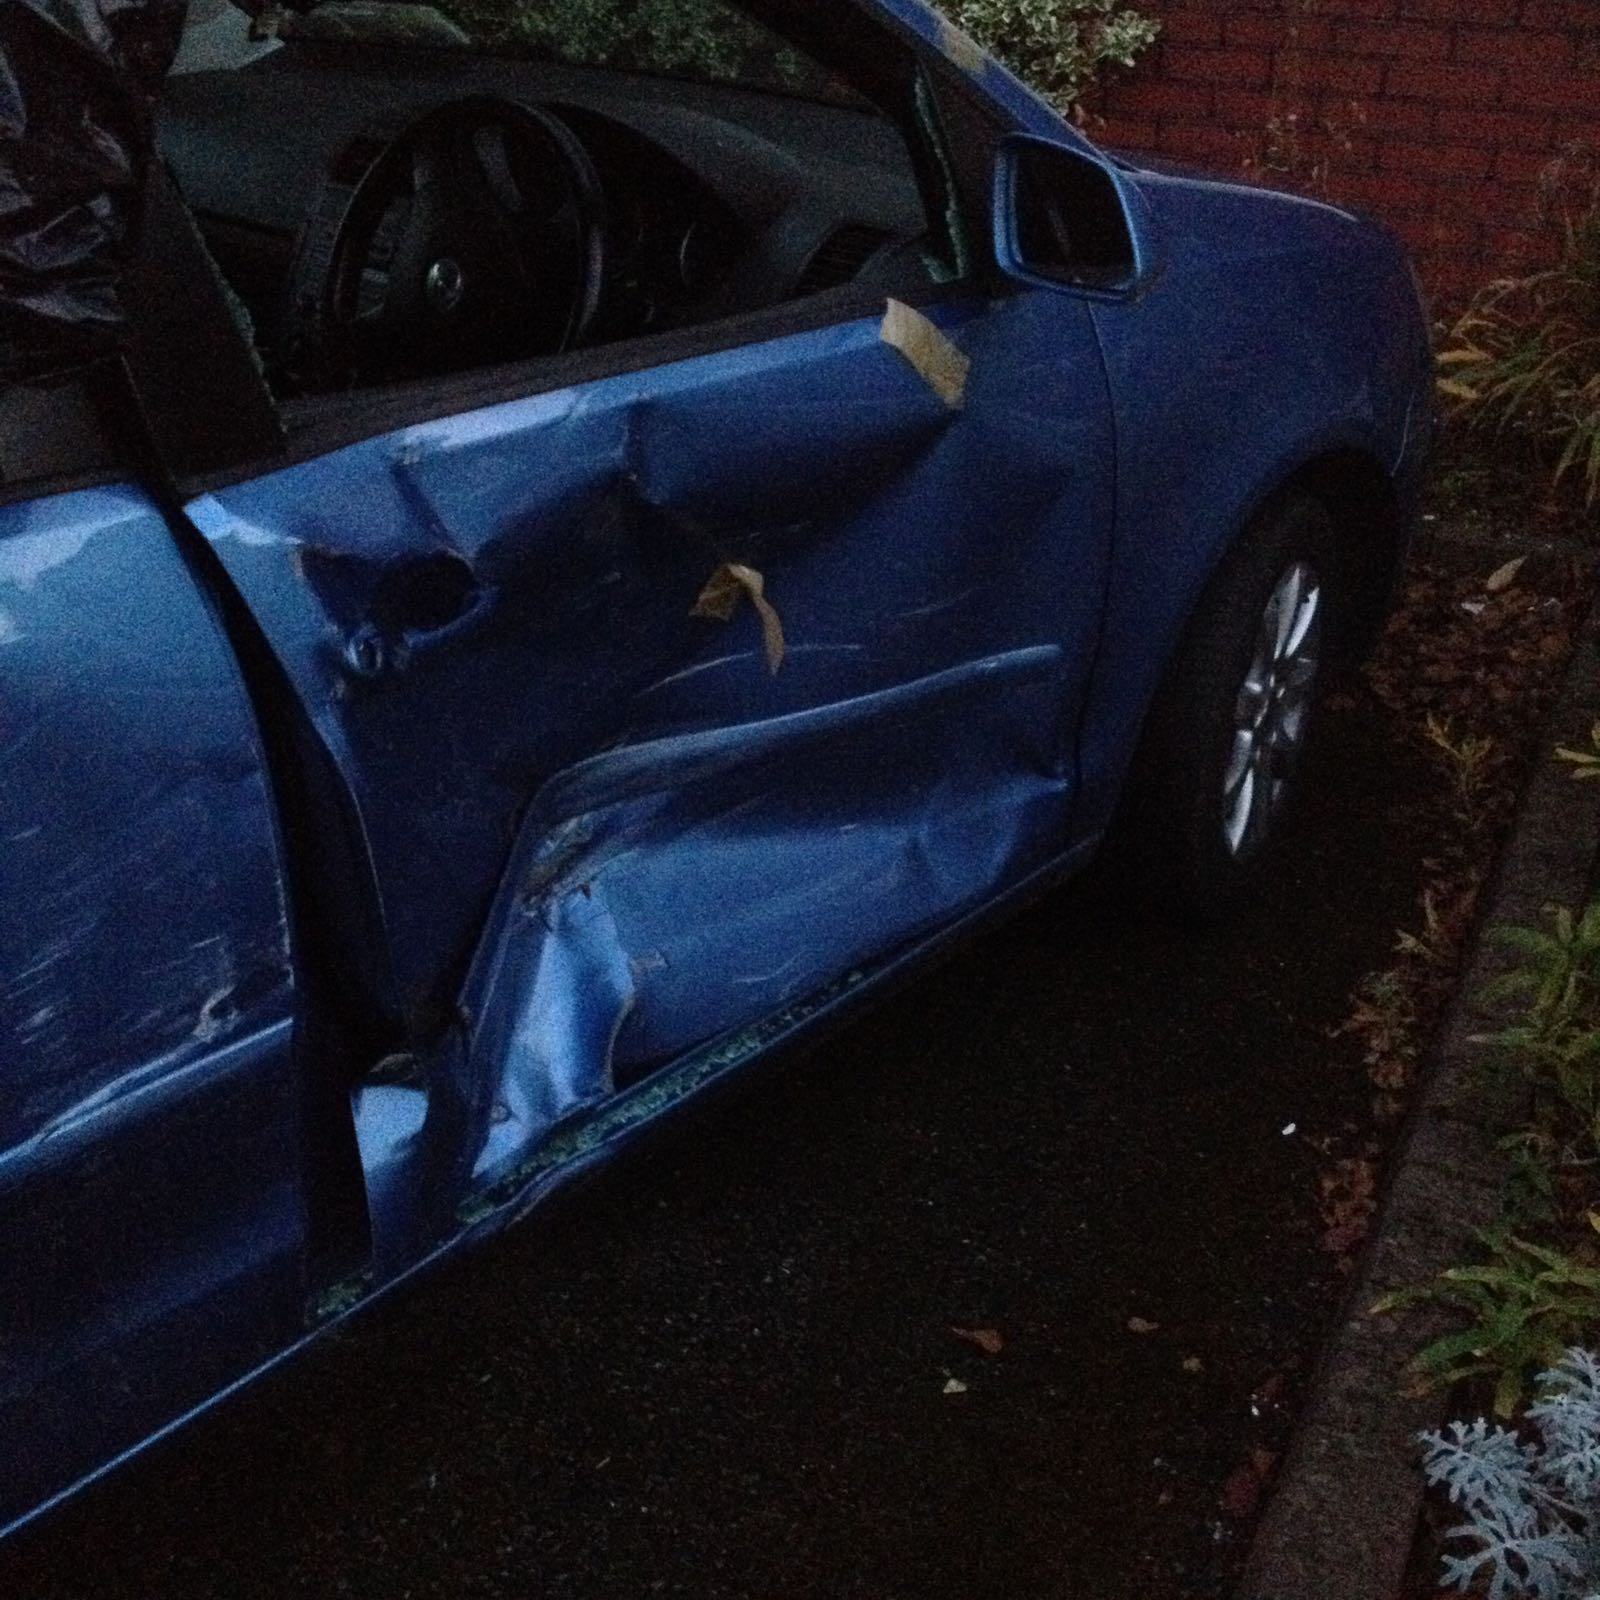 Image of a car with crash repair damage